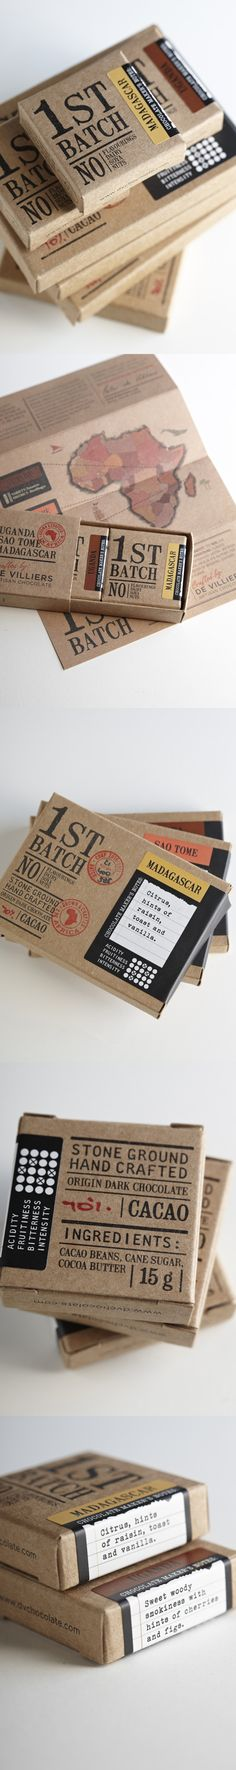 1st Batch Chocolates by Jane Says. Repinned by www.strobl-kriegner.com #branding #packaging #design #creative #marketing